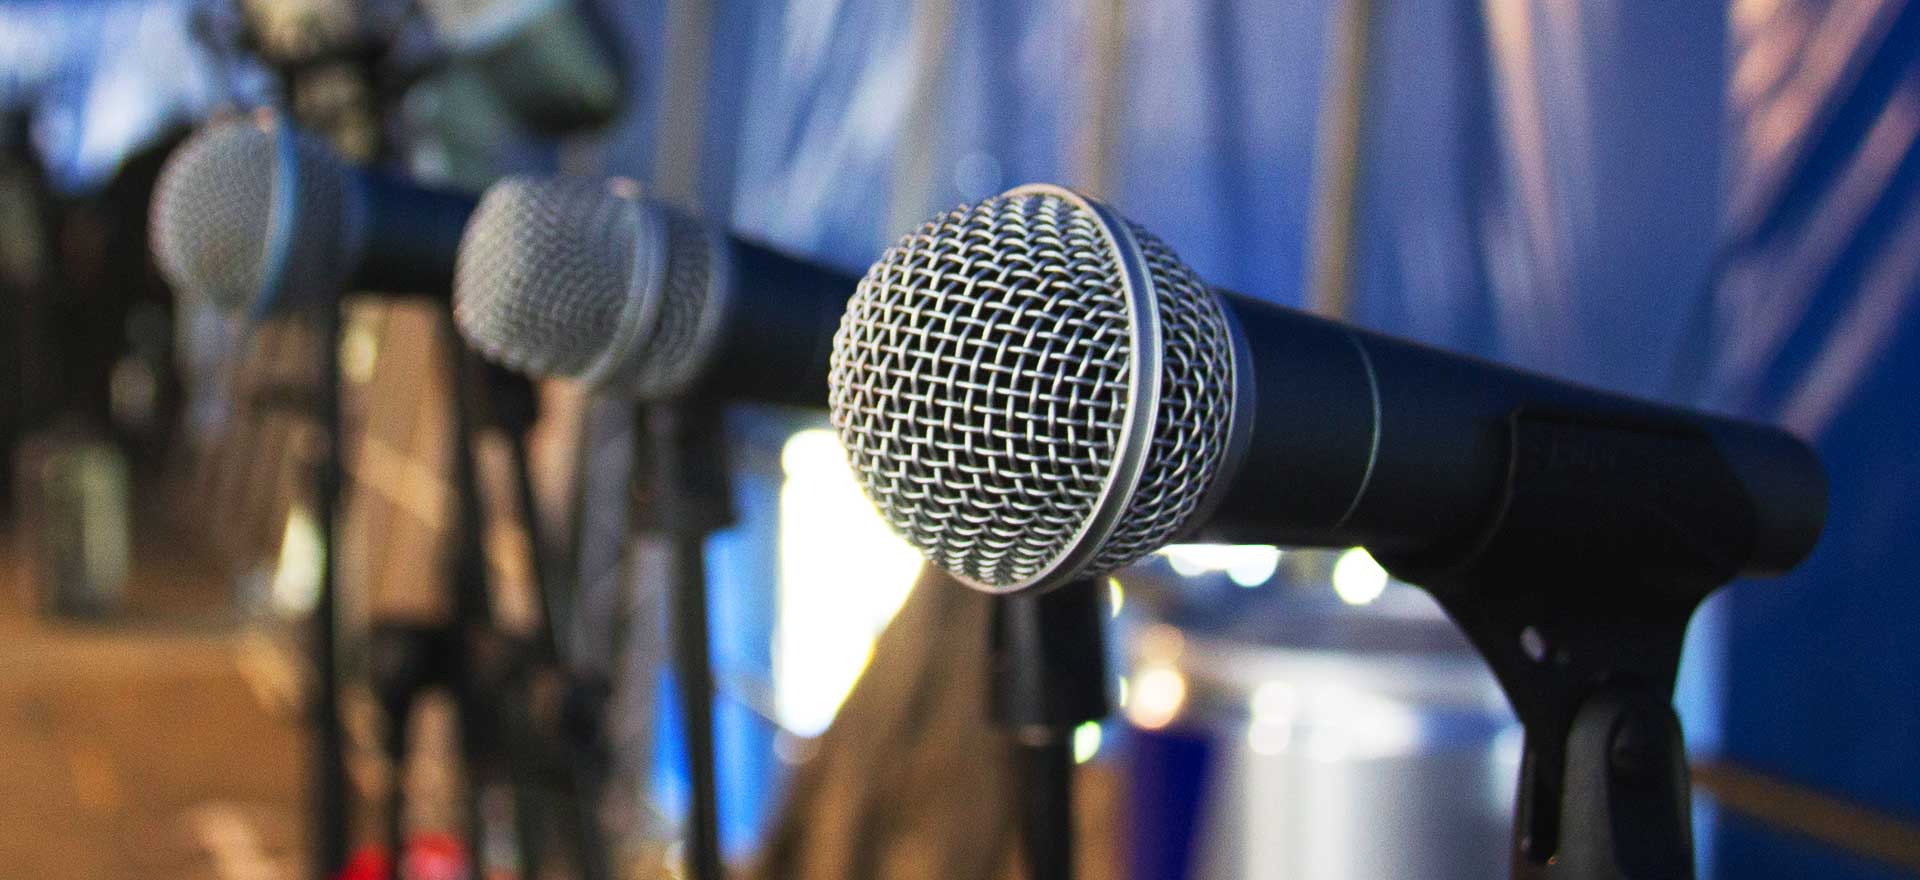 Microphones on stage